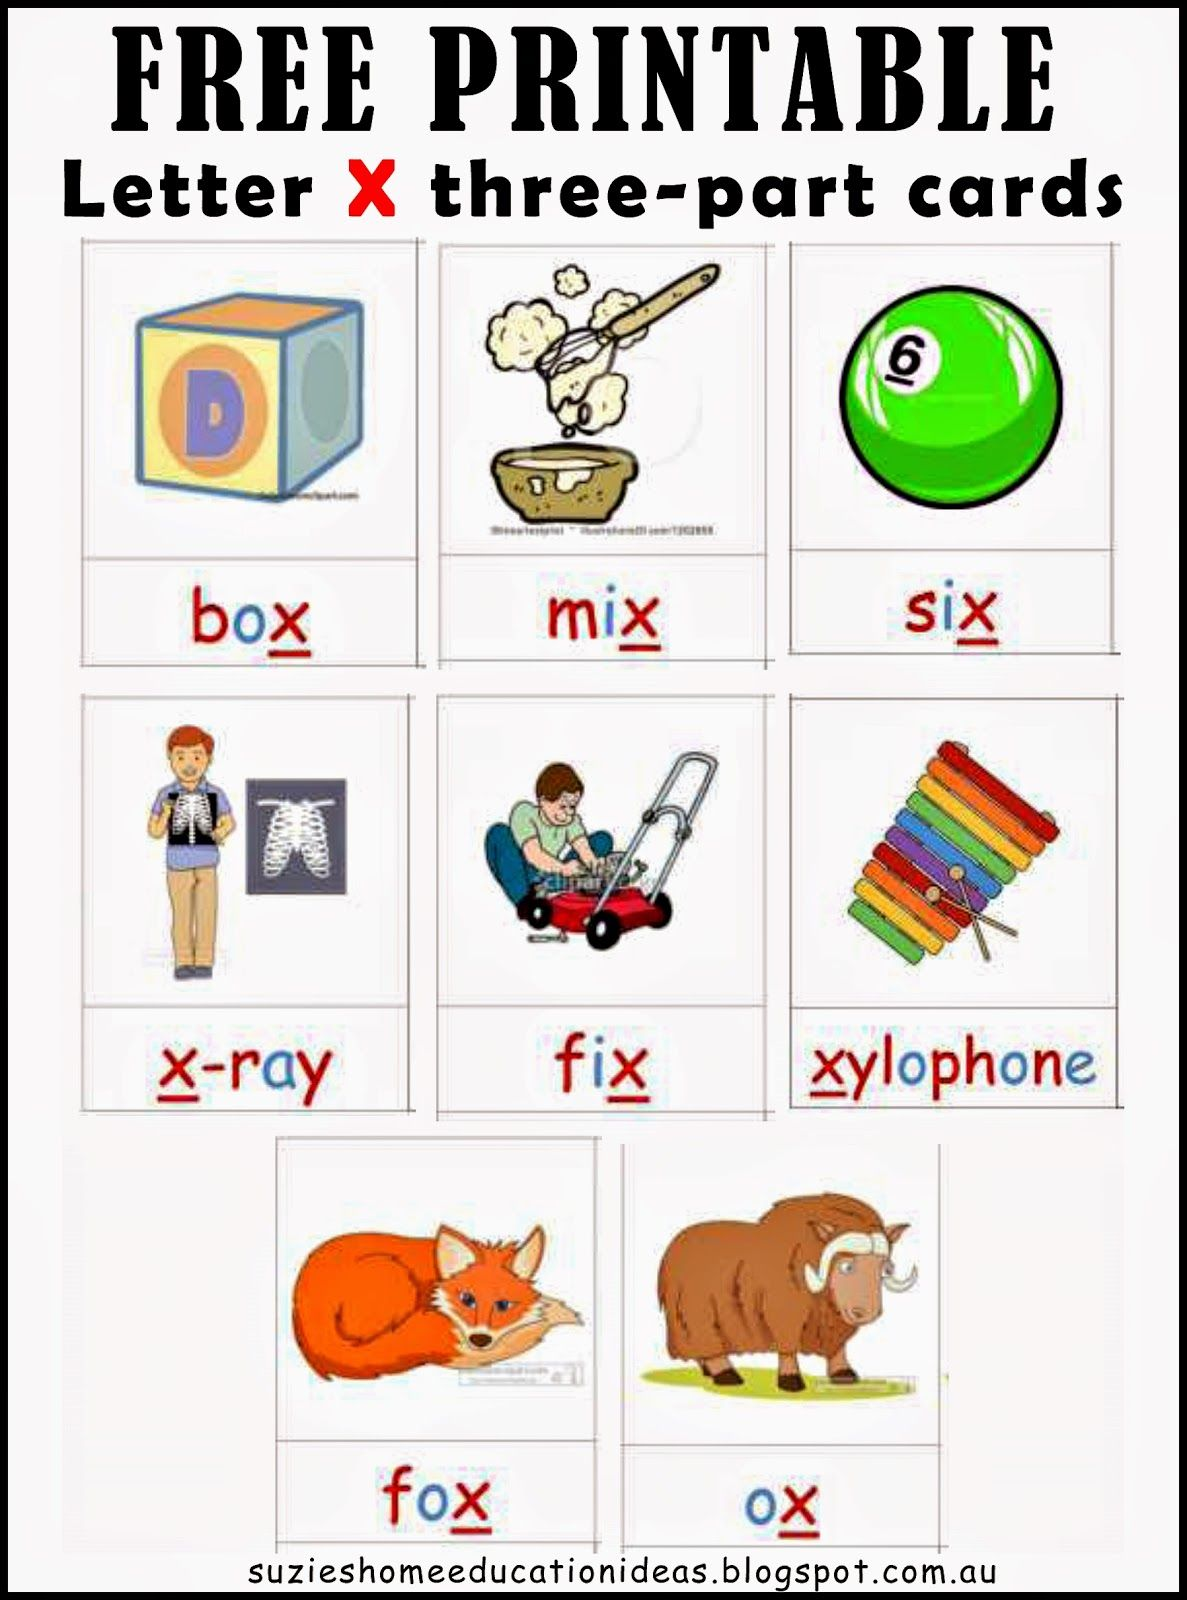 7 letter words with e letter x printable cards and activity ideas activities 22117 | 0803c61f828283595e0133e98b7ef693